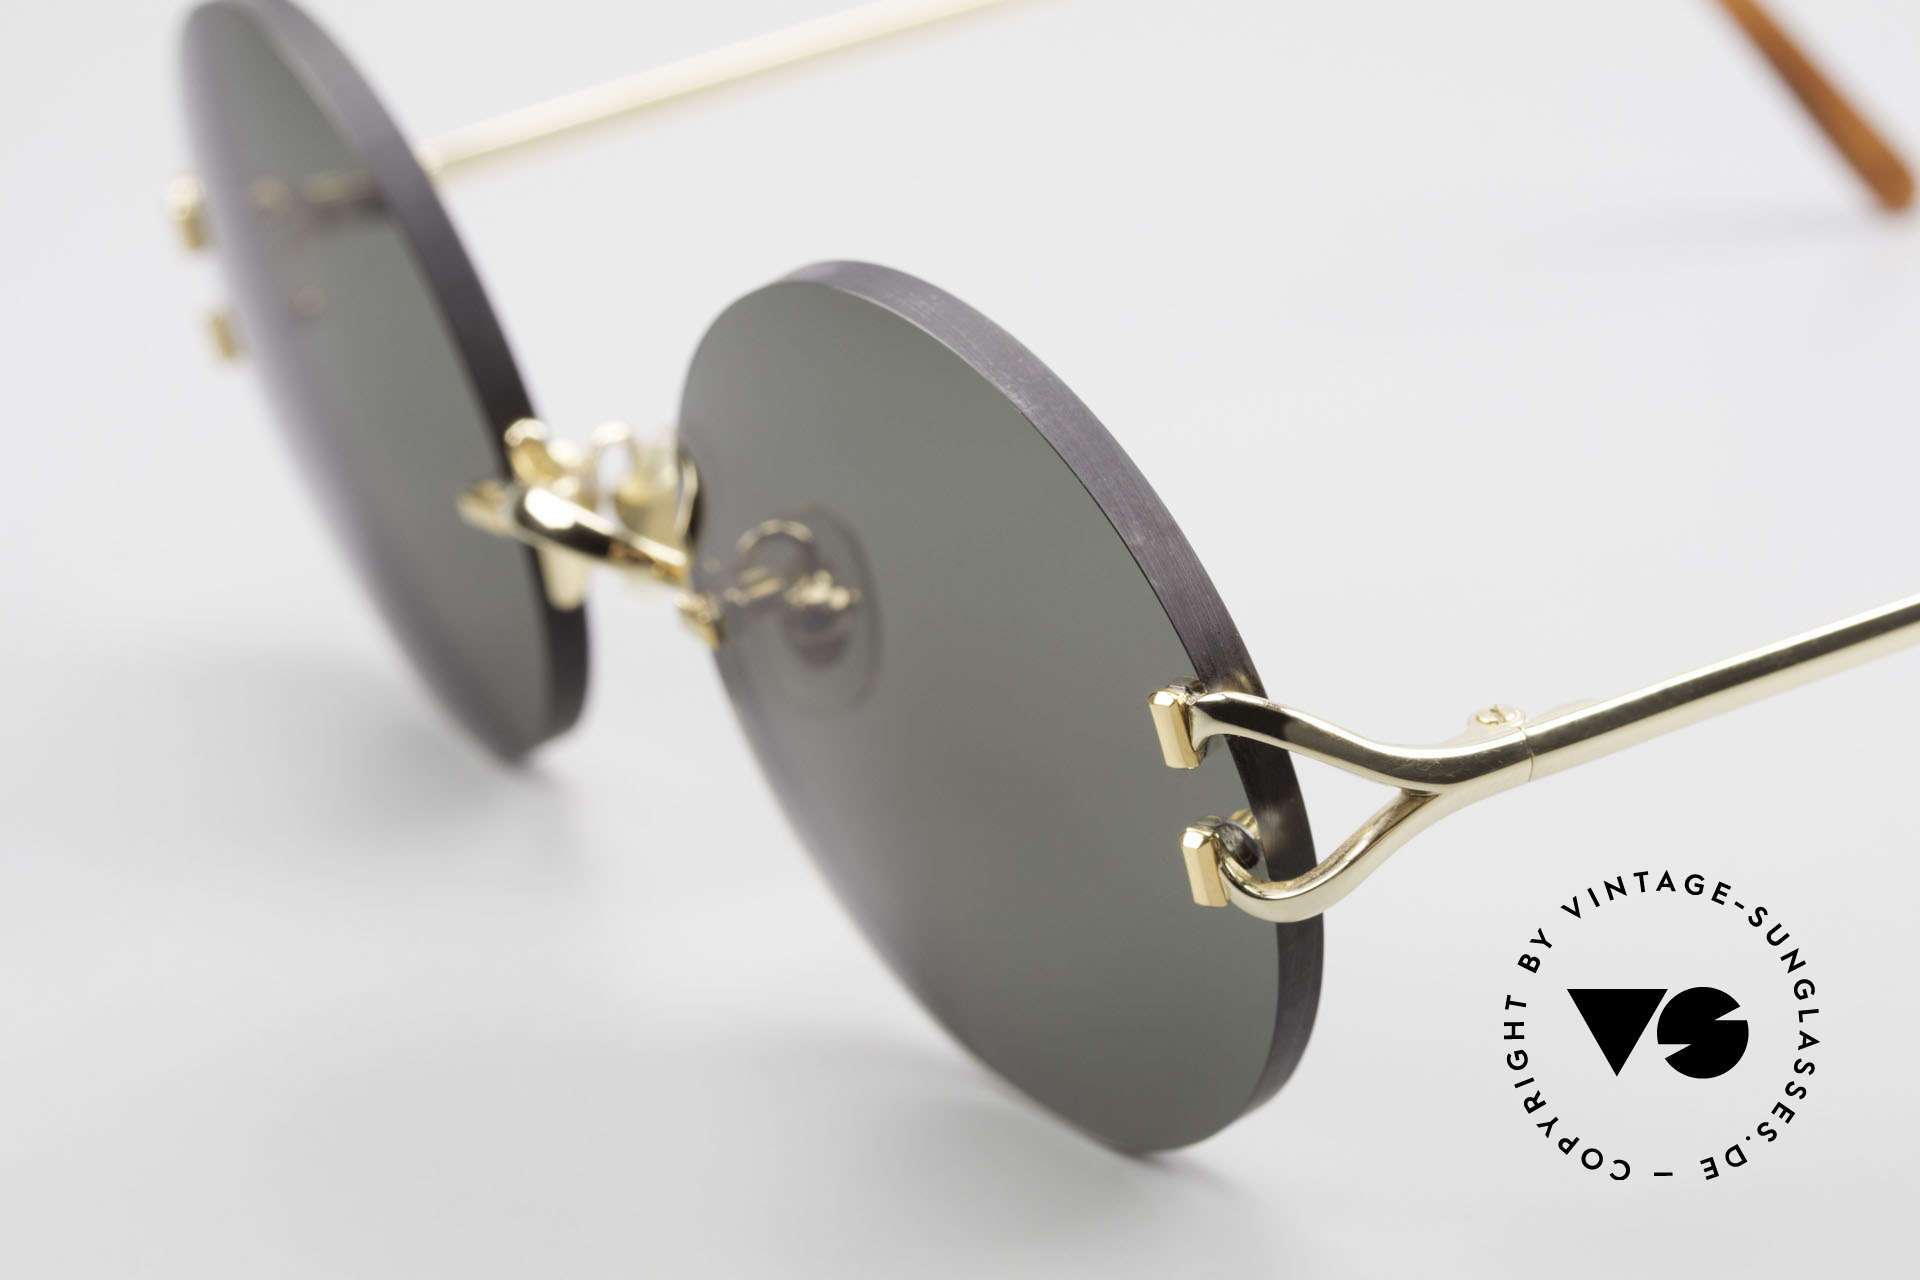 Cartier Madison Round Luxury Sunglasses 90's, with new CR39 UV400 lenses in gray-green G15 color, Made for Men and Women